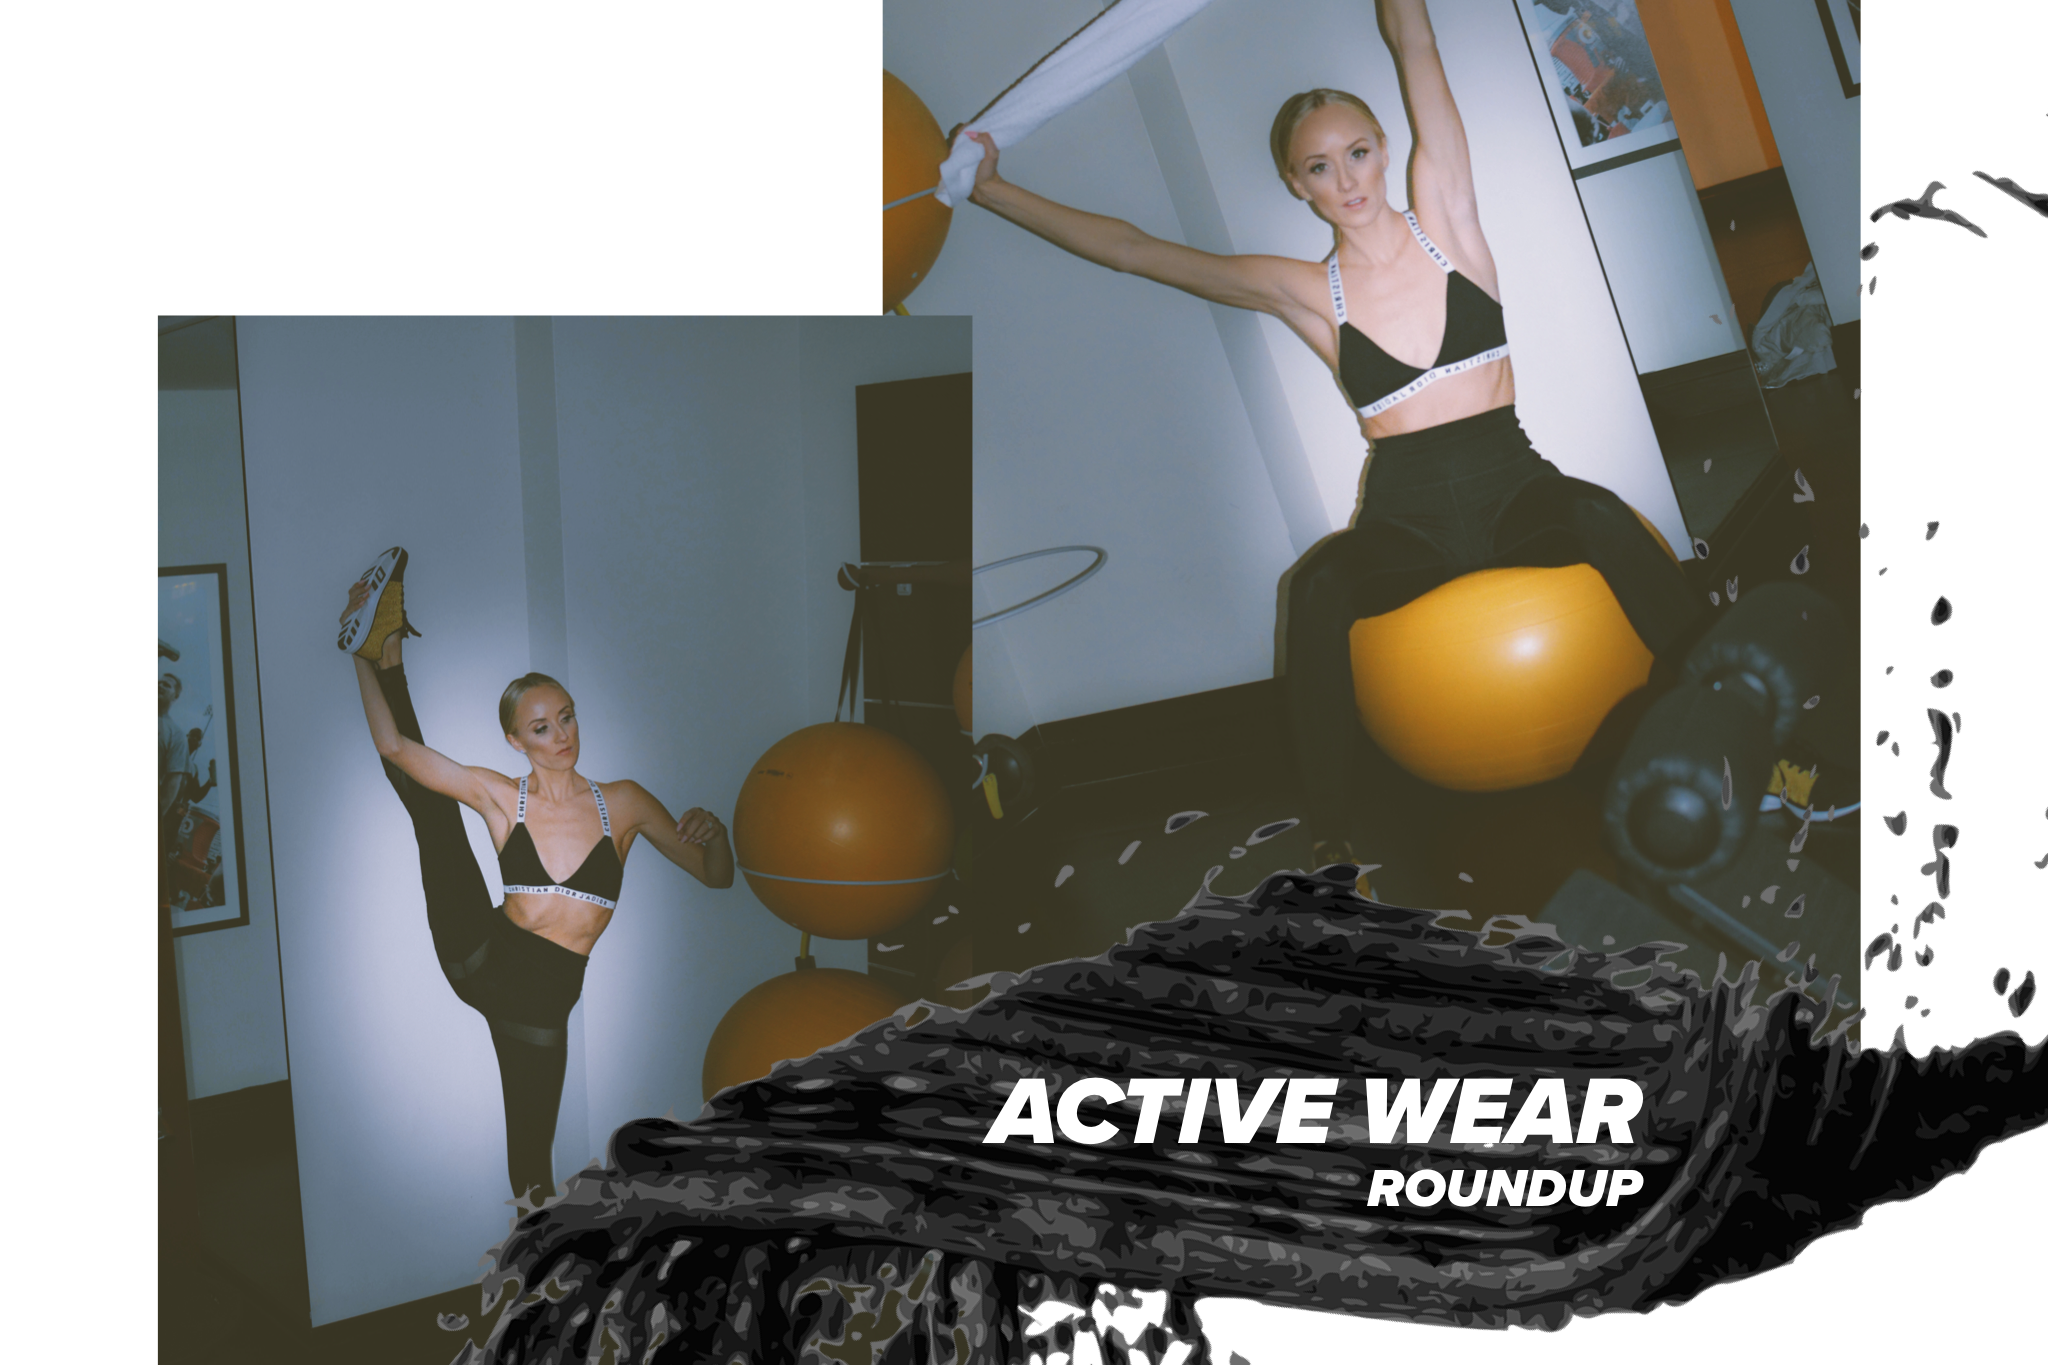 nastia_liukin_active_wear_shopping_guide